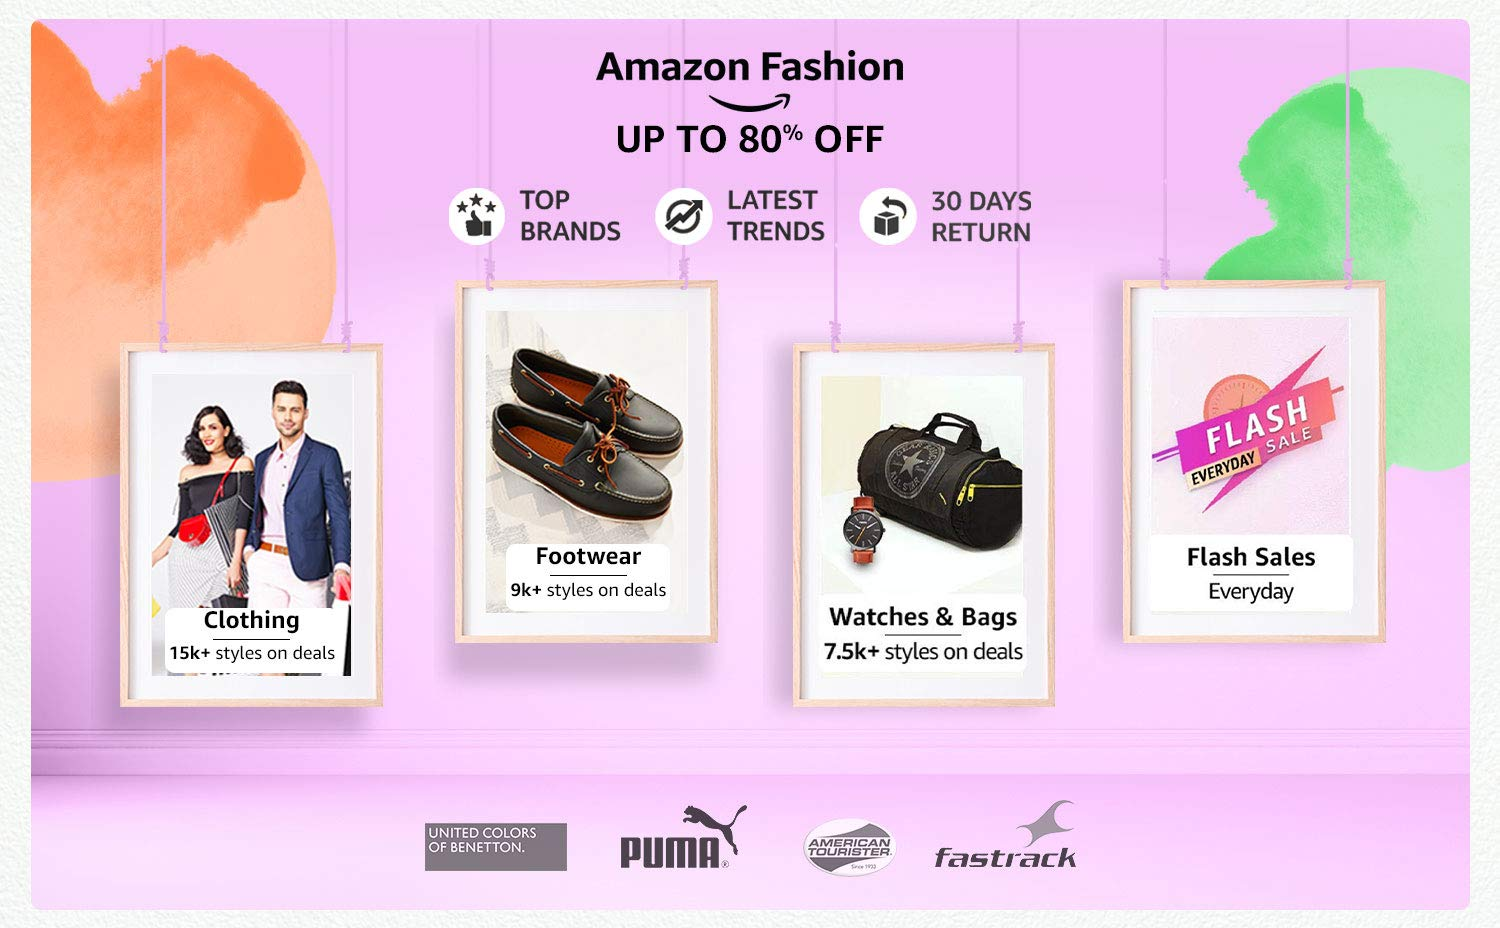 Fashion up to 80% off